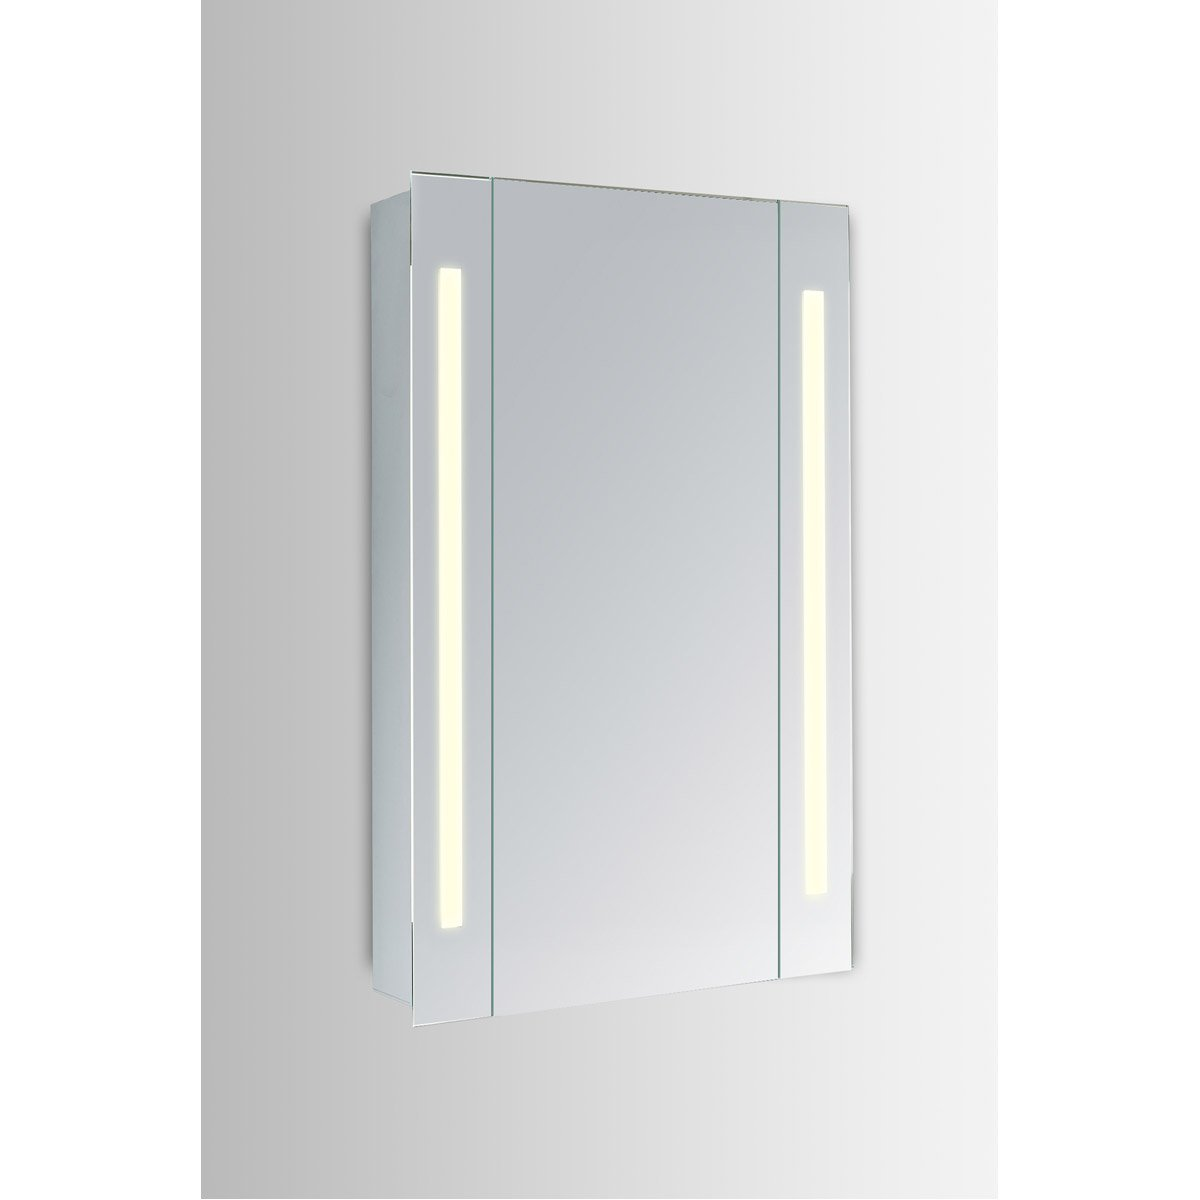 Elixir 30 X 23.5 Led Mirror Cabinet - Silver Finish (Mre8012) Led Cabinet